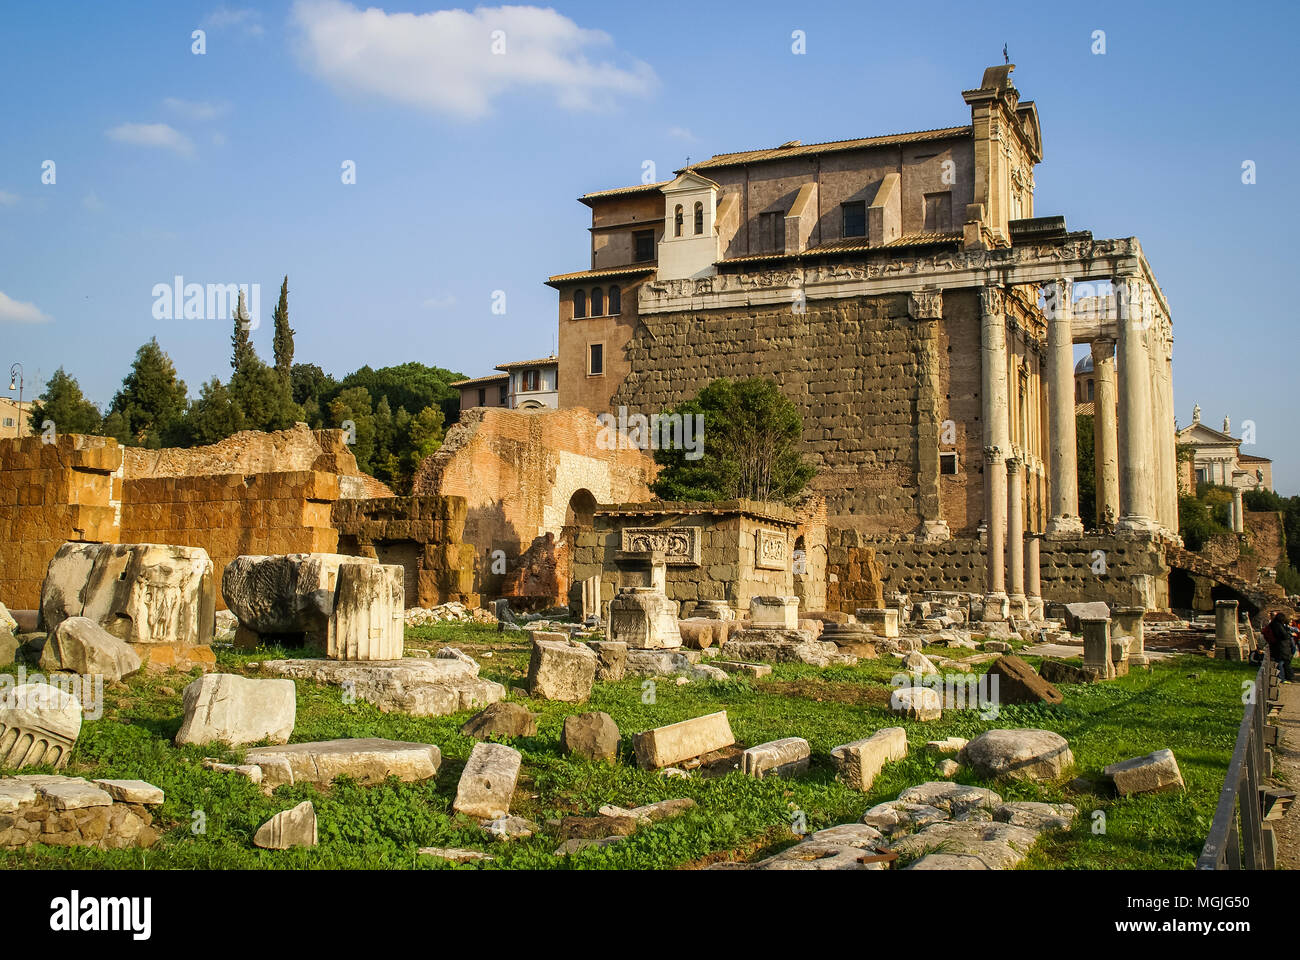 Architectural ruins on the ground next to Temple Antoninus and Faustin, now used as Church of San Lorenzo in Miranda. Roman Forum; Rome, Italy - Stock Image